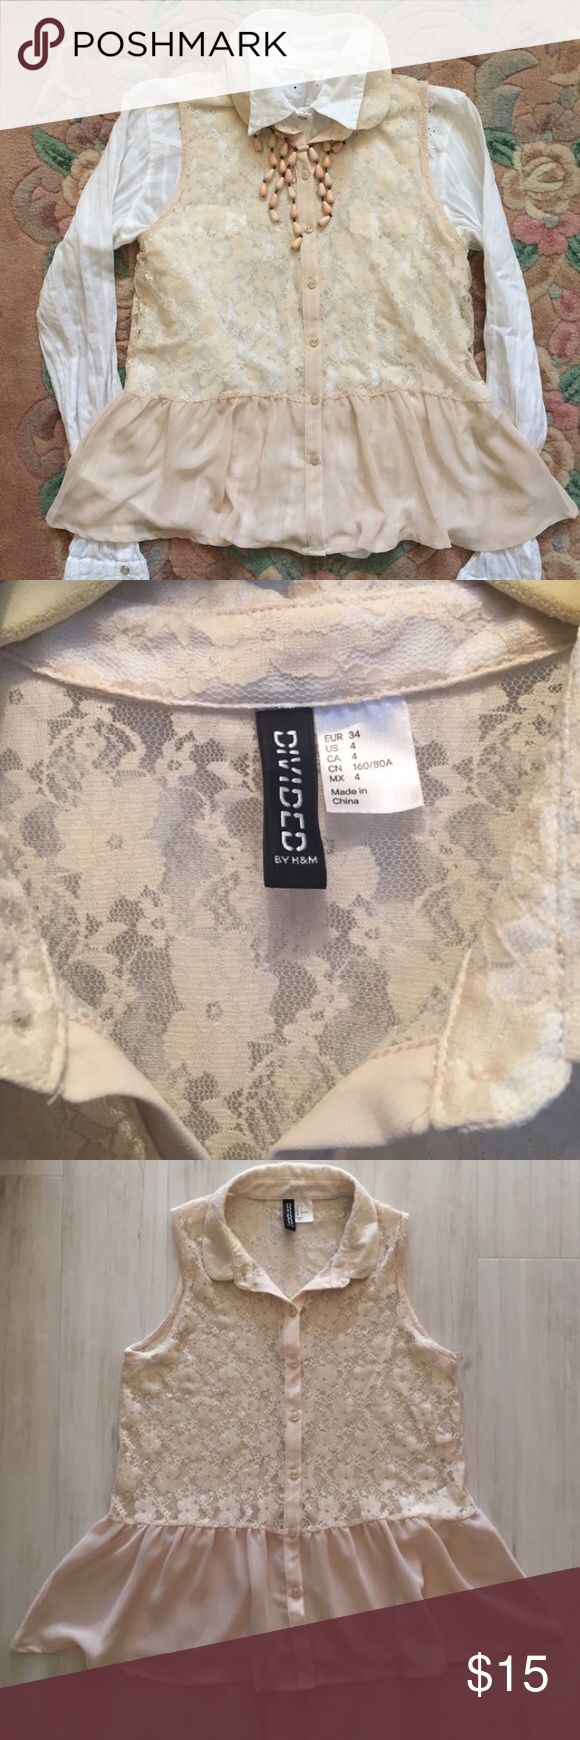 Divided by H&M Lace Peplum Top Super feminine lace top with sheer peplum flounce. Lace is stretchy. Beautiful blush color. Layer over a white button down shirt for the a look. Shirt is available in another listing. Like new. H&M Tops